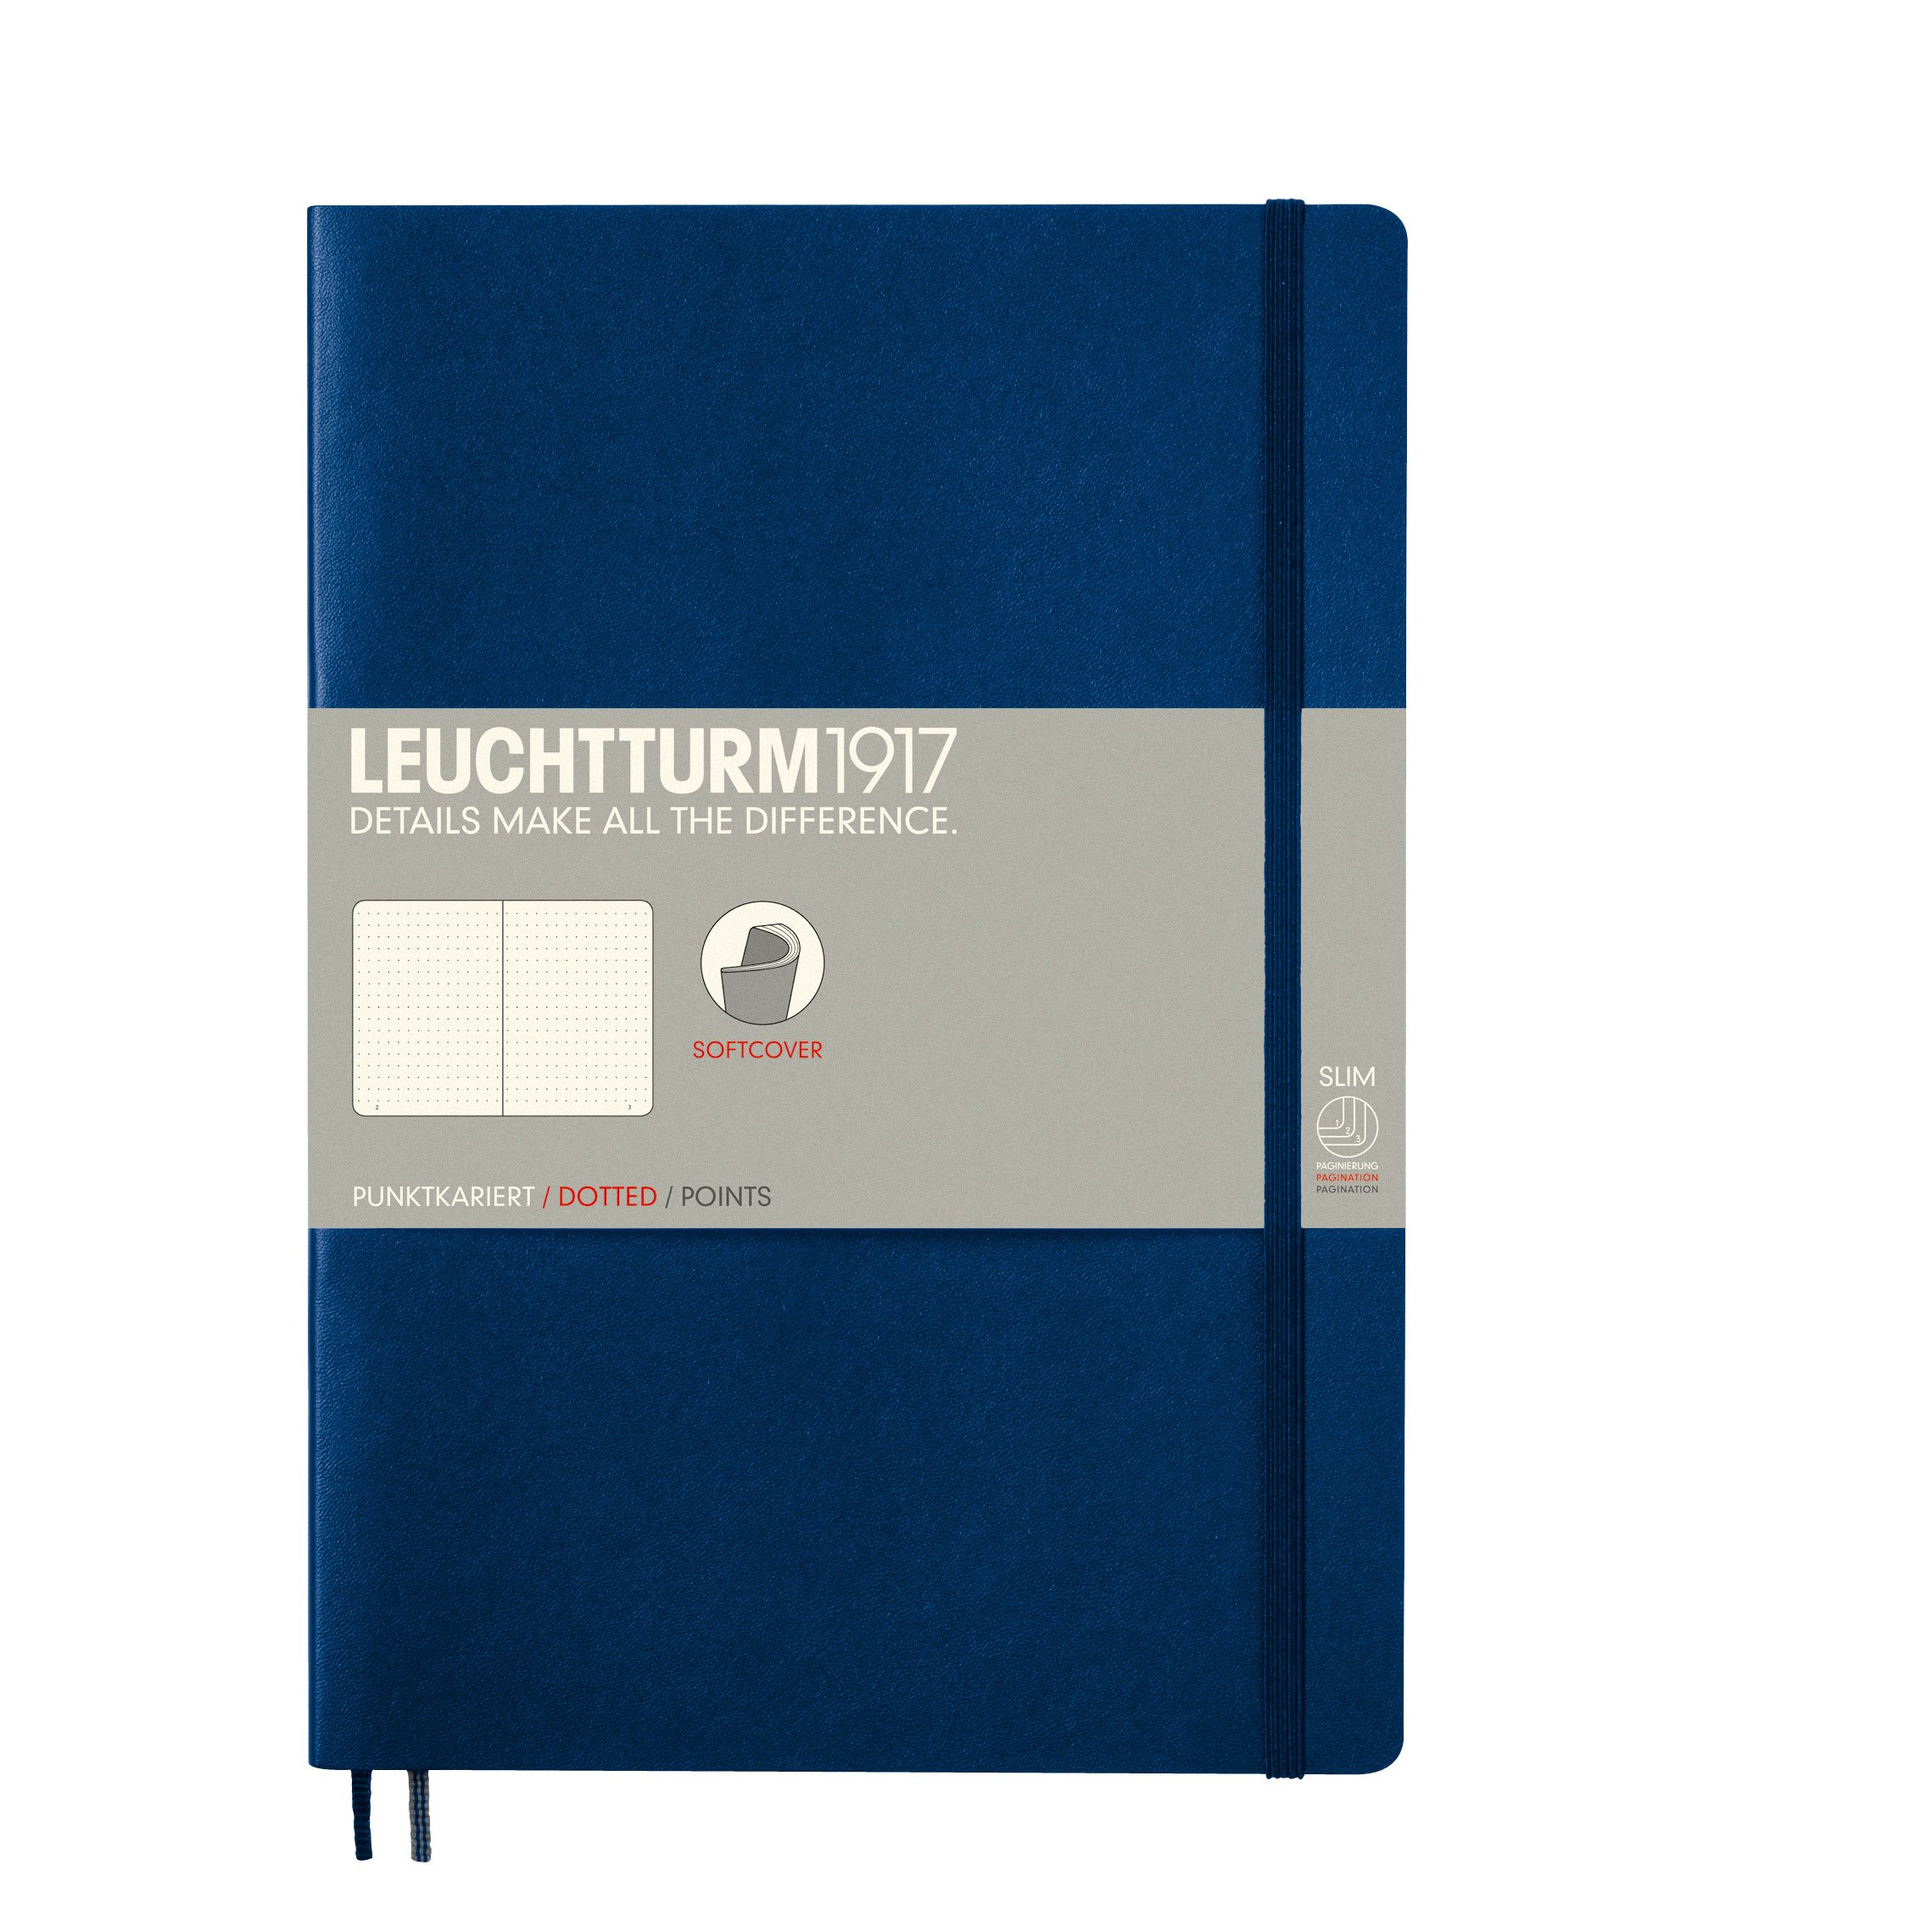 Leuchtturm Softcover Composition B5 Dotted Notebook [Navy] by LEUCHTTURM1917 (Image #1)